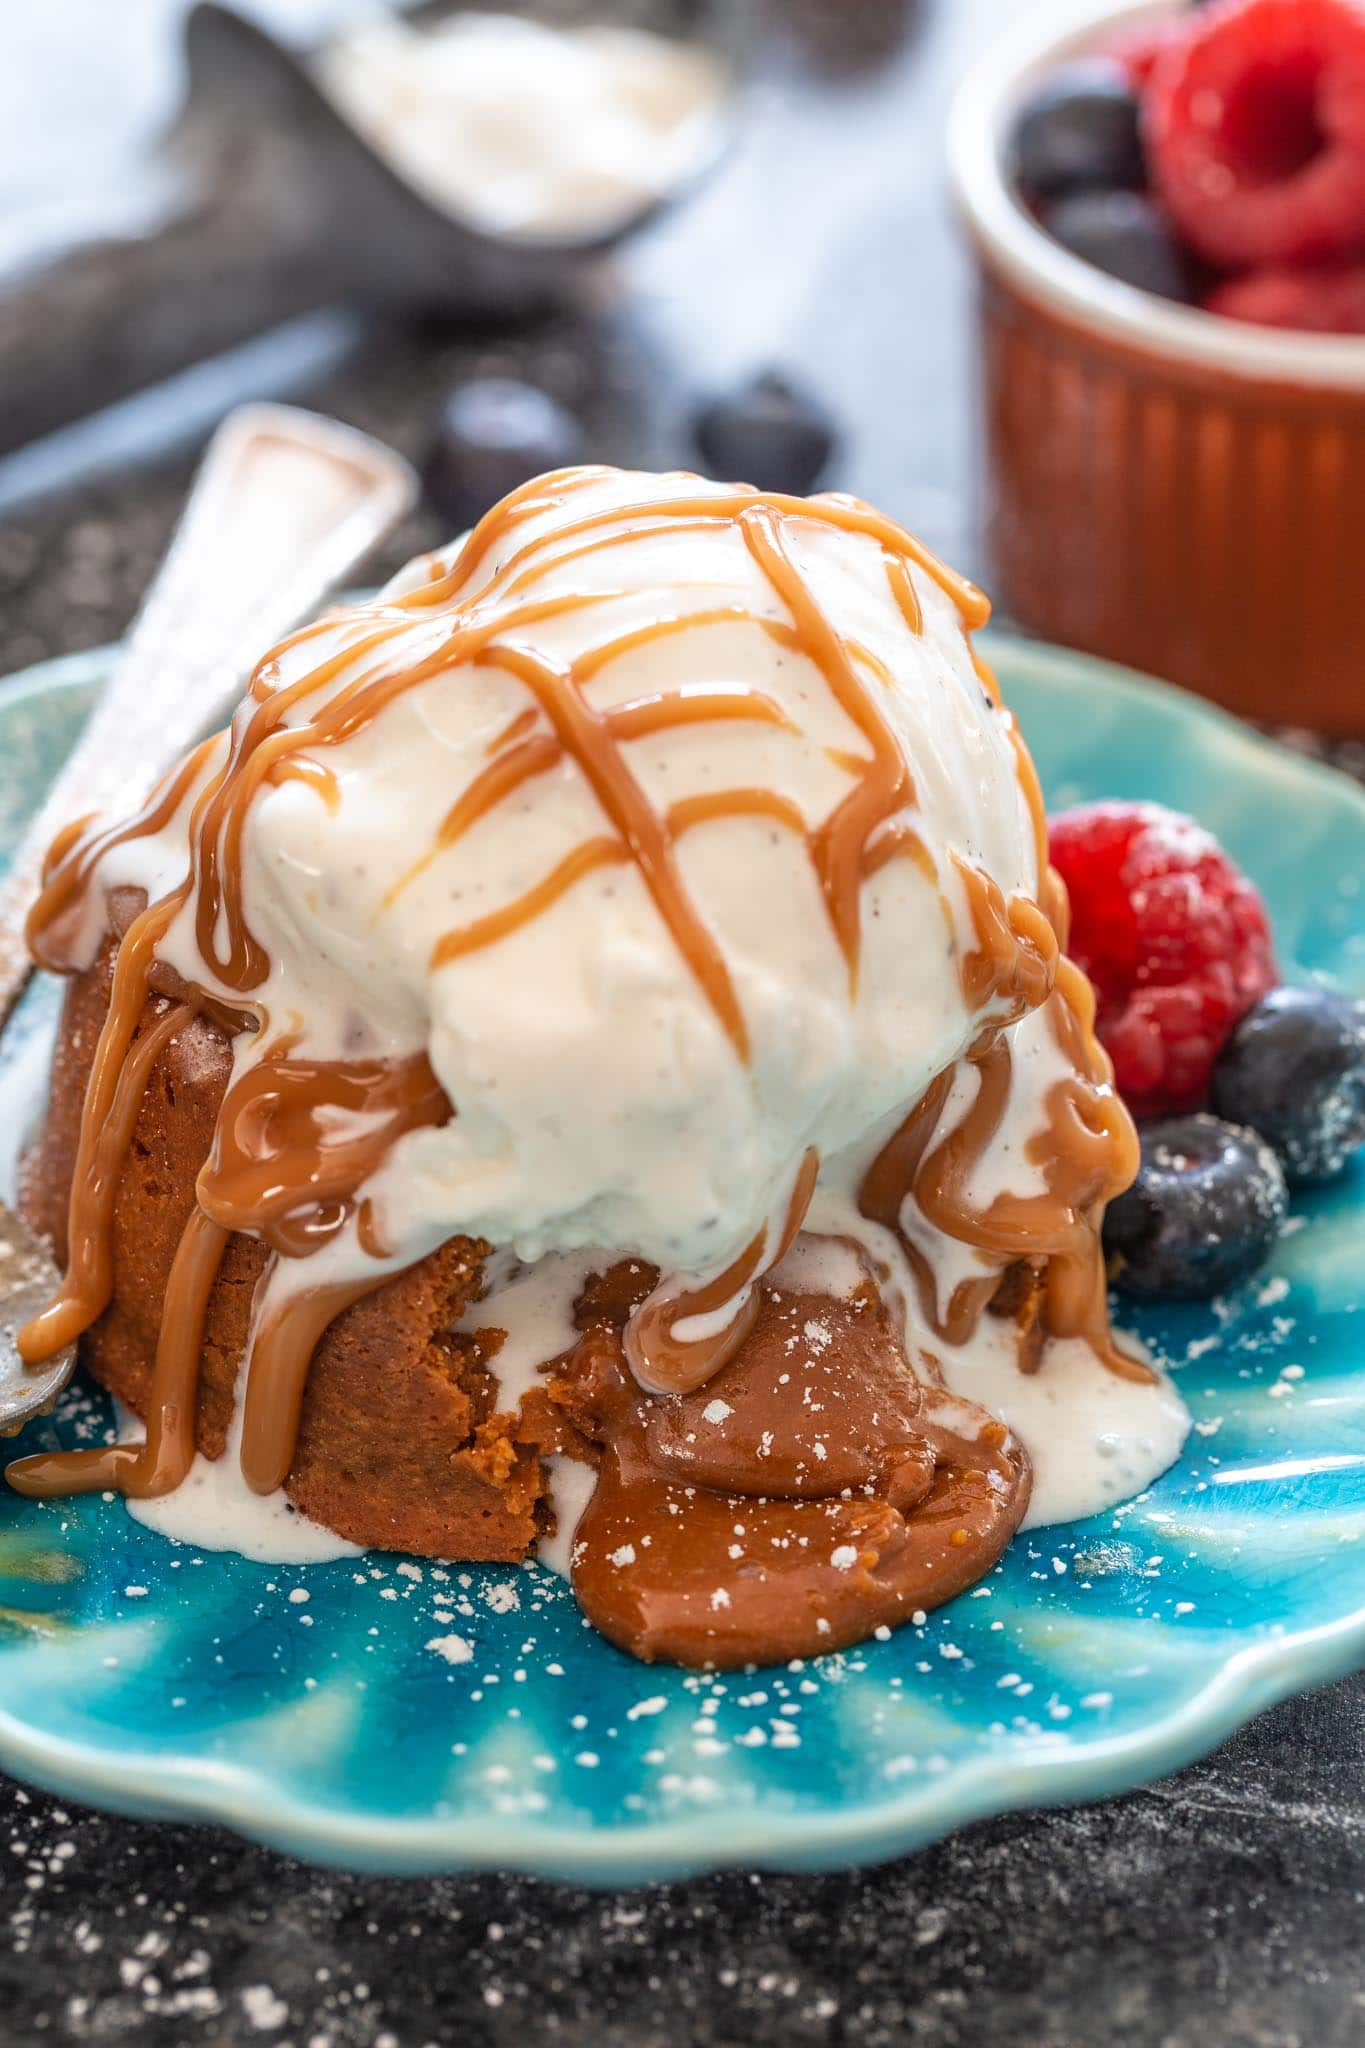 Dulce de Leche Molten Cake topped with vanilla ice cream